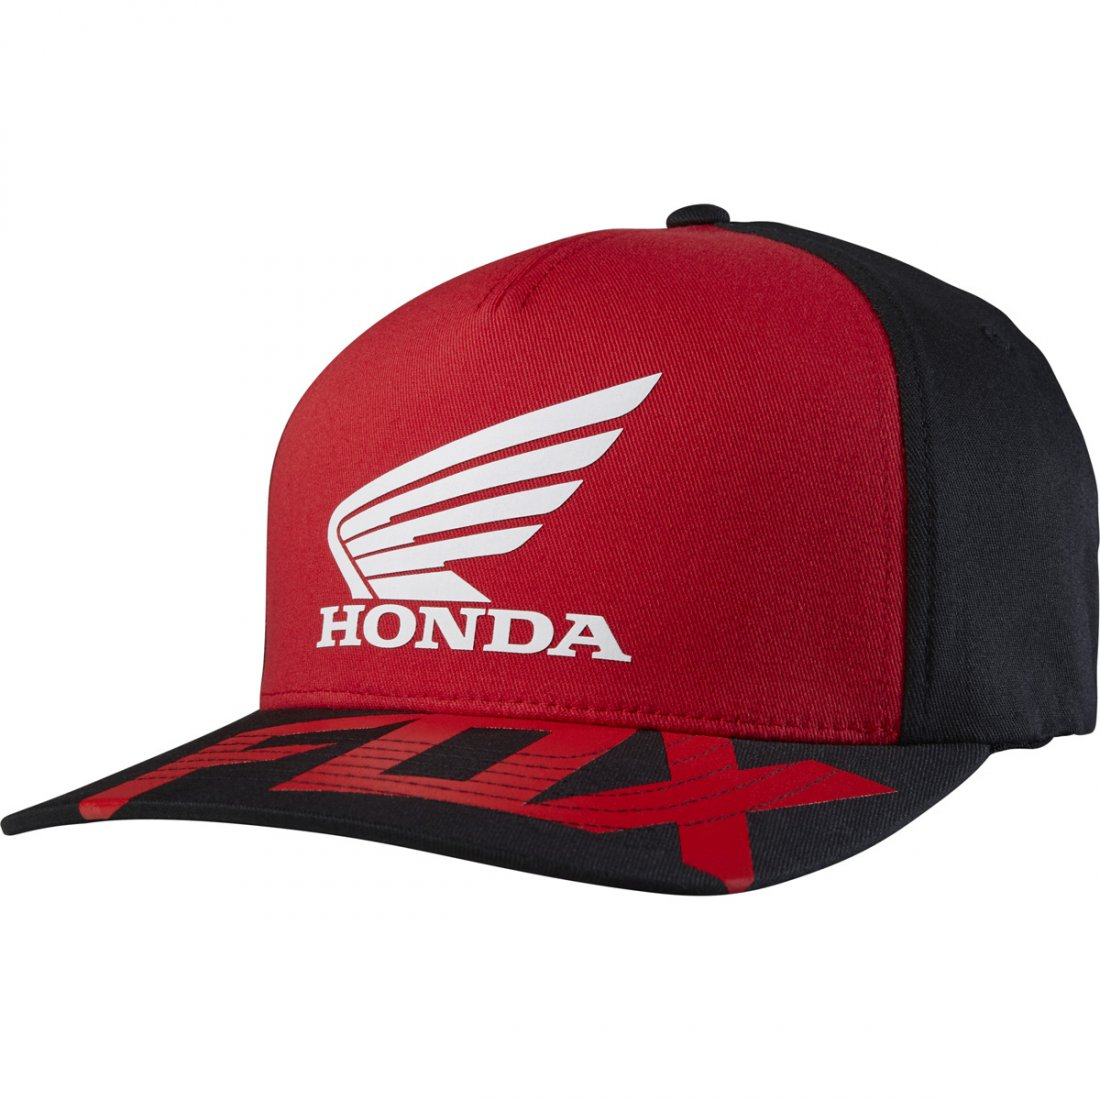 a99704e94a040 Gorra FOX Honda Basic Flexfit Red   Black · Motocard